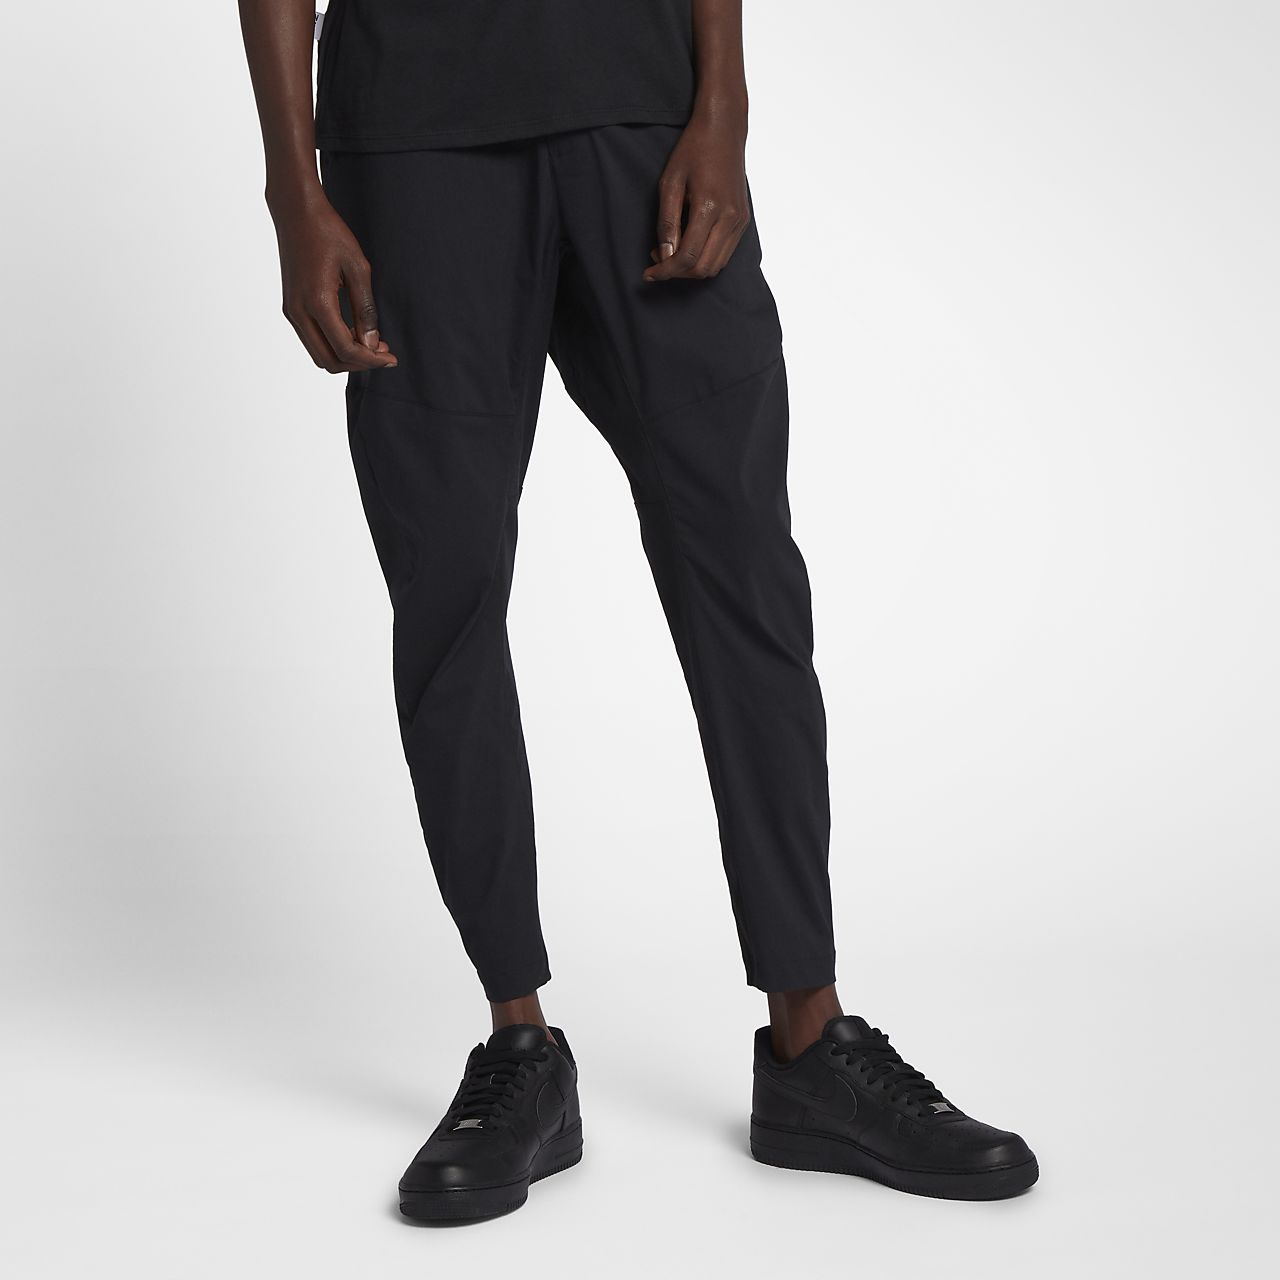 7bdb31a4f2 Nike Sportswear Tech Pack Men s Trousers. Nike.com GB